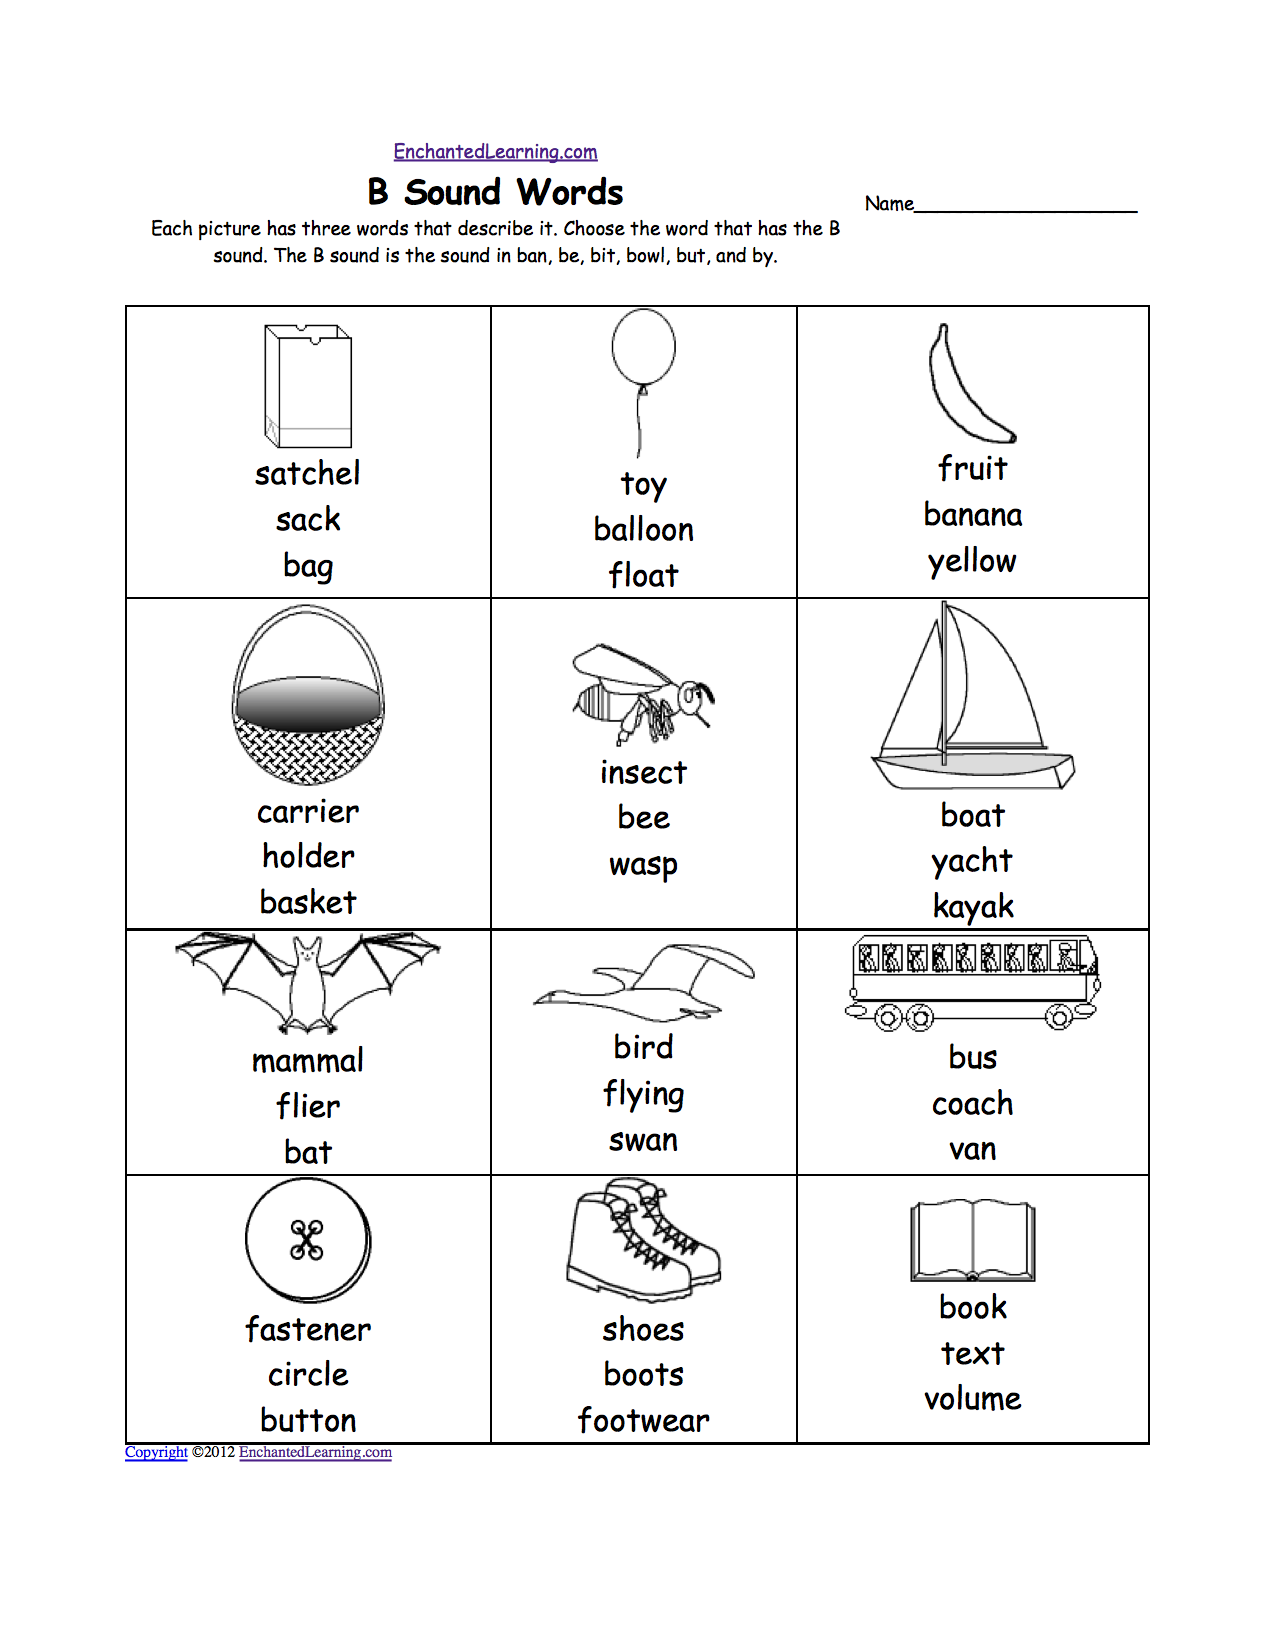 Aldiablosus  Surprising Phonics Worksheets Multiple Choice Worksheets To Print  With Hot Quotbquot Sound Phonics Worksheet Multiple Choice Each Picture Has Three Words That Describe It Choose The Word That Has A Quotbquot Sound The Quotbquot Sound Is The Sound  With Agreeable St Grade Place Value Worksheets Also Bill Nye Outer Space Worksheet In Addition Metaphors And Similes Worksheet And Vivid Verbs Worksheet As Well As Finding Scale Factor Worksheet Additionally Senses Worksheet From Enchantedlearningcom With Aldiablosus  Hot Phonics Worksheets Multiple Choice Worksheets To Print  With Agreeable Quotbquot Sound Phonics Worksheet Multiple Choice Each Picture Has Three Words That Describe It Choose The Word That Has A Quotbquot Sound The Quotbquot Sound Is The Sound  And Surprising St Grade Place Value Worksheets Also Bill Nye Outer Space Worksheet In Addition Metaphors And Similes Worksheet From Enchantedlearningcom